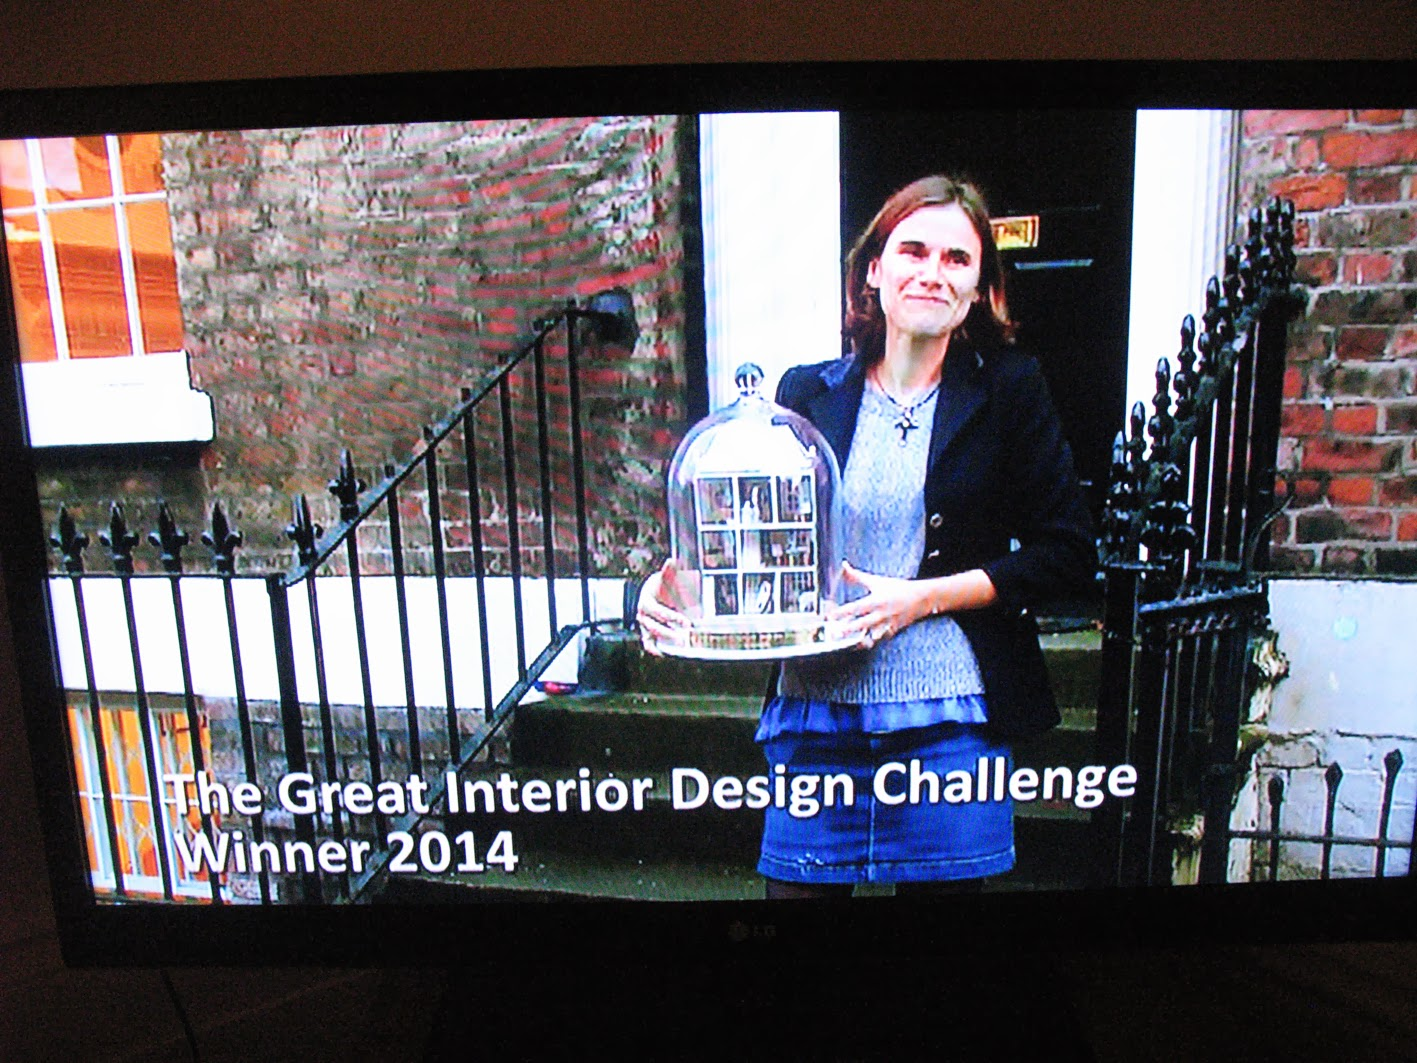 The Great Interior Design Challenge Final Winner